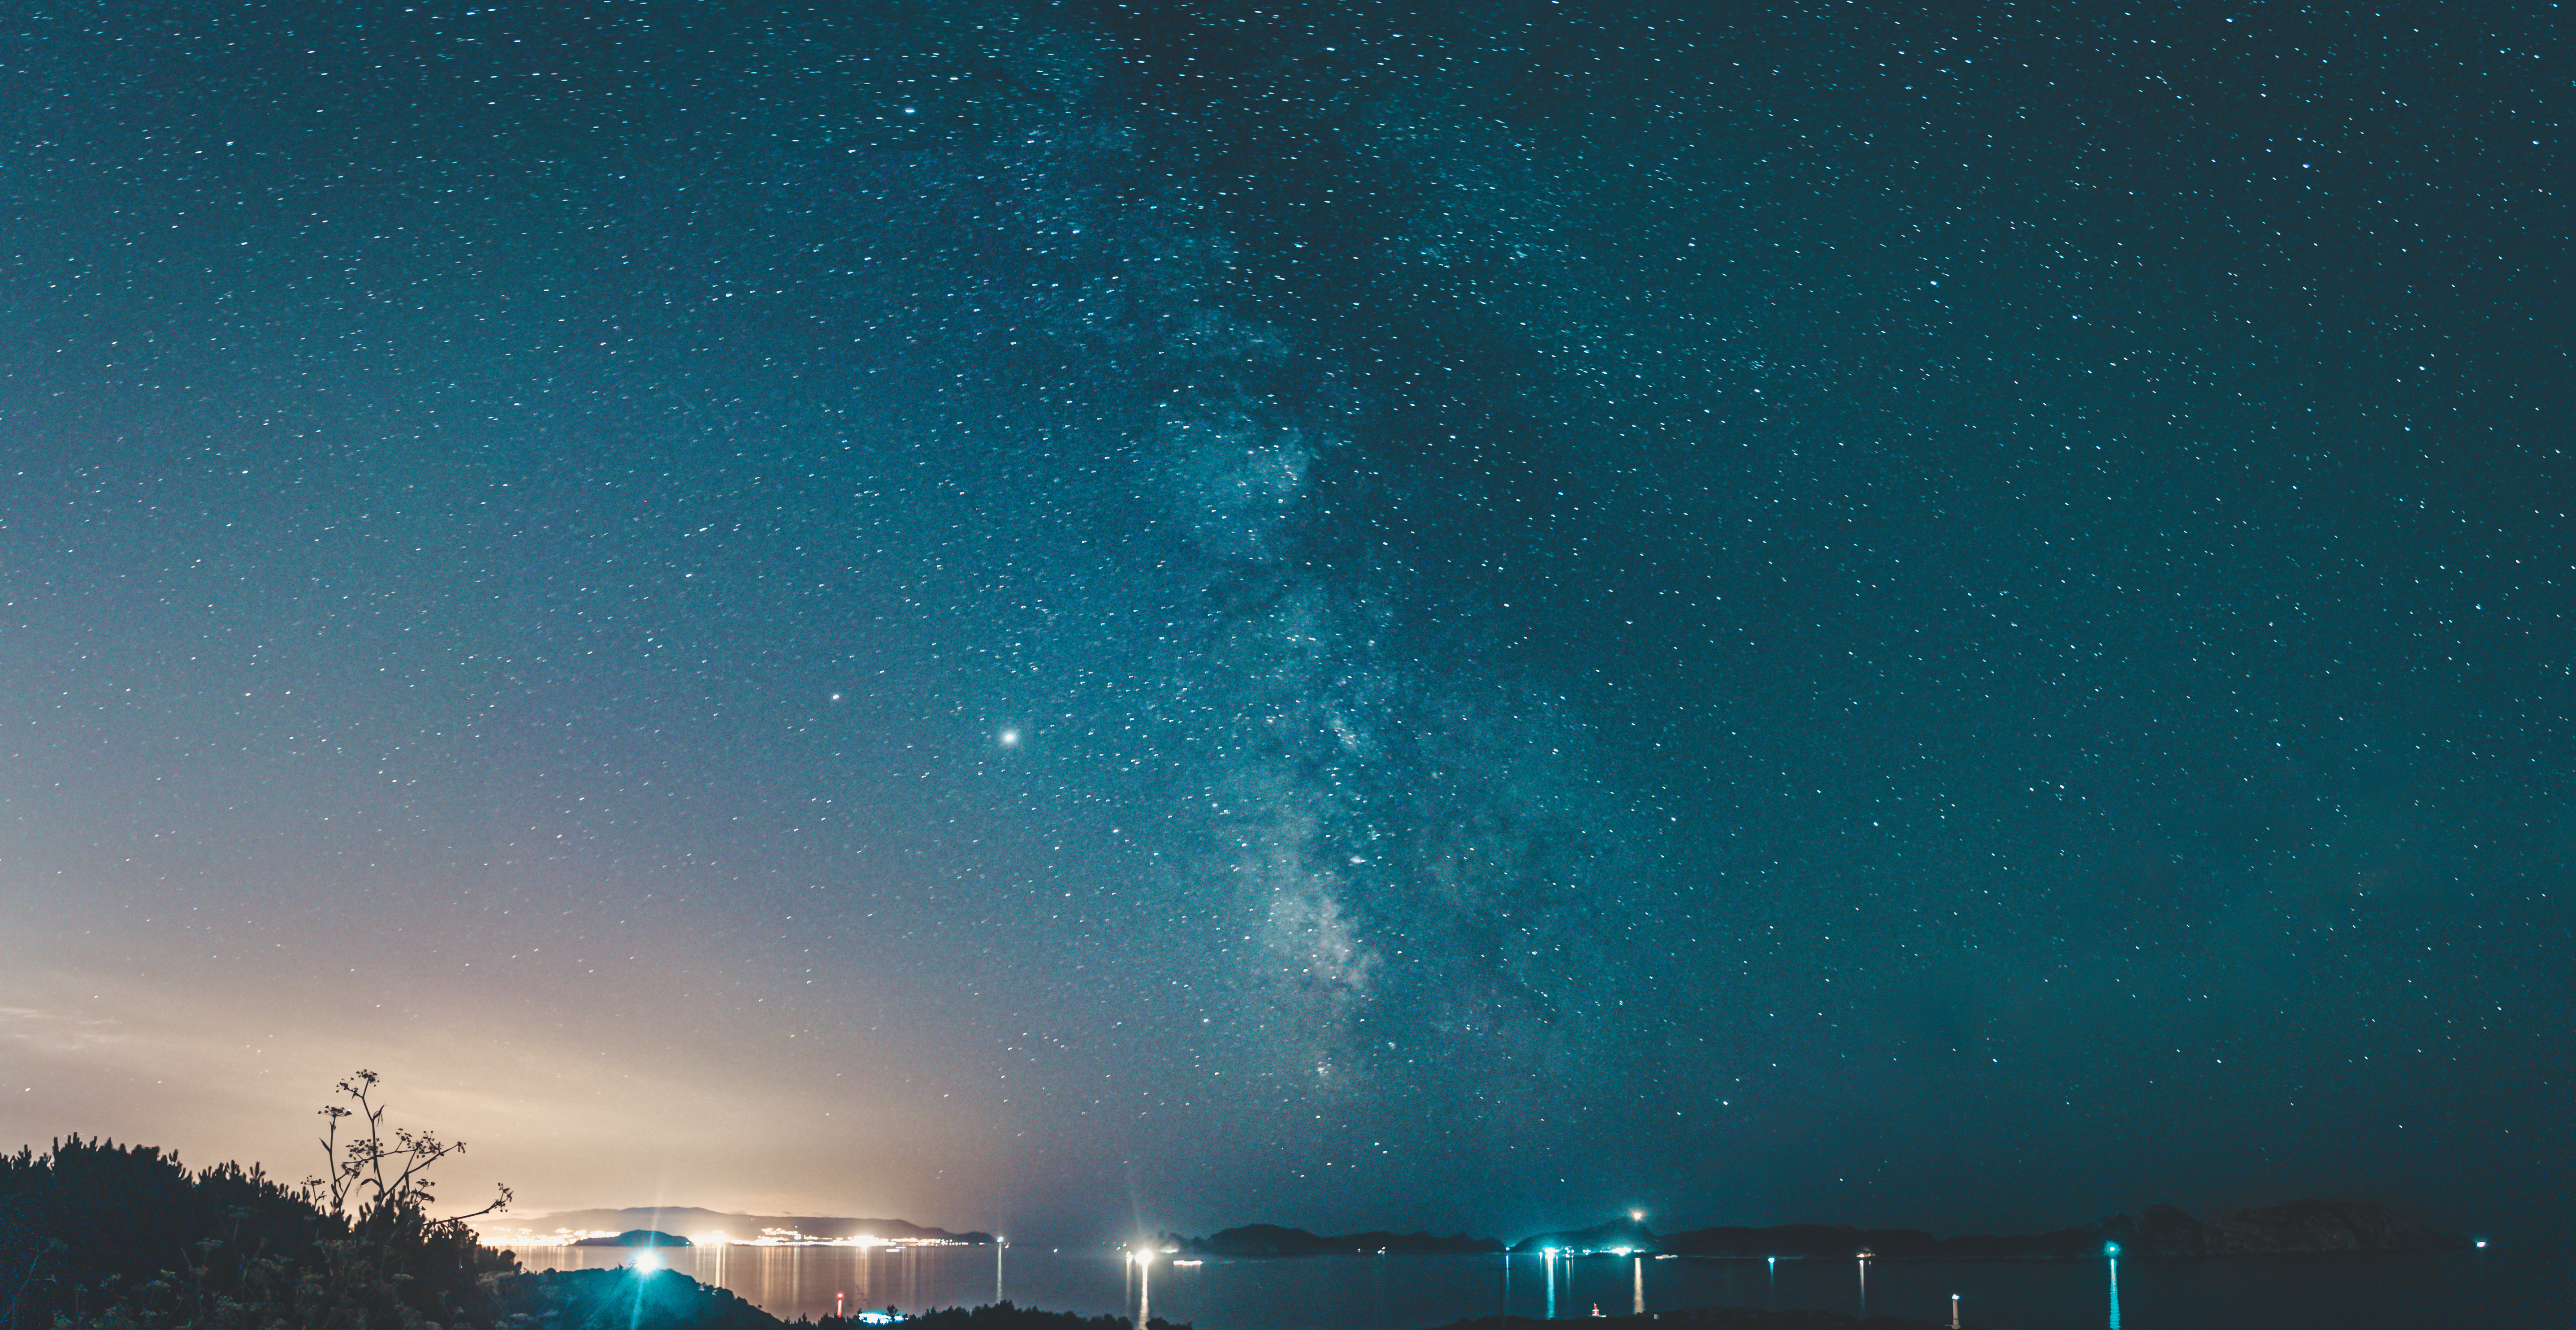 Panoramic view of the Milky Way